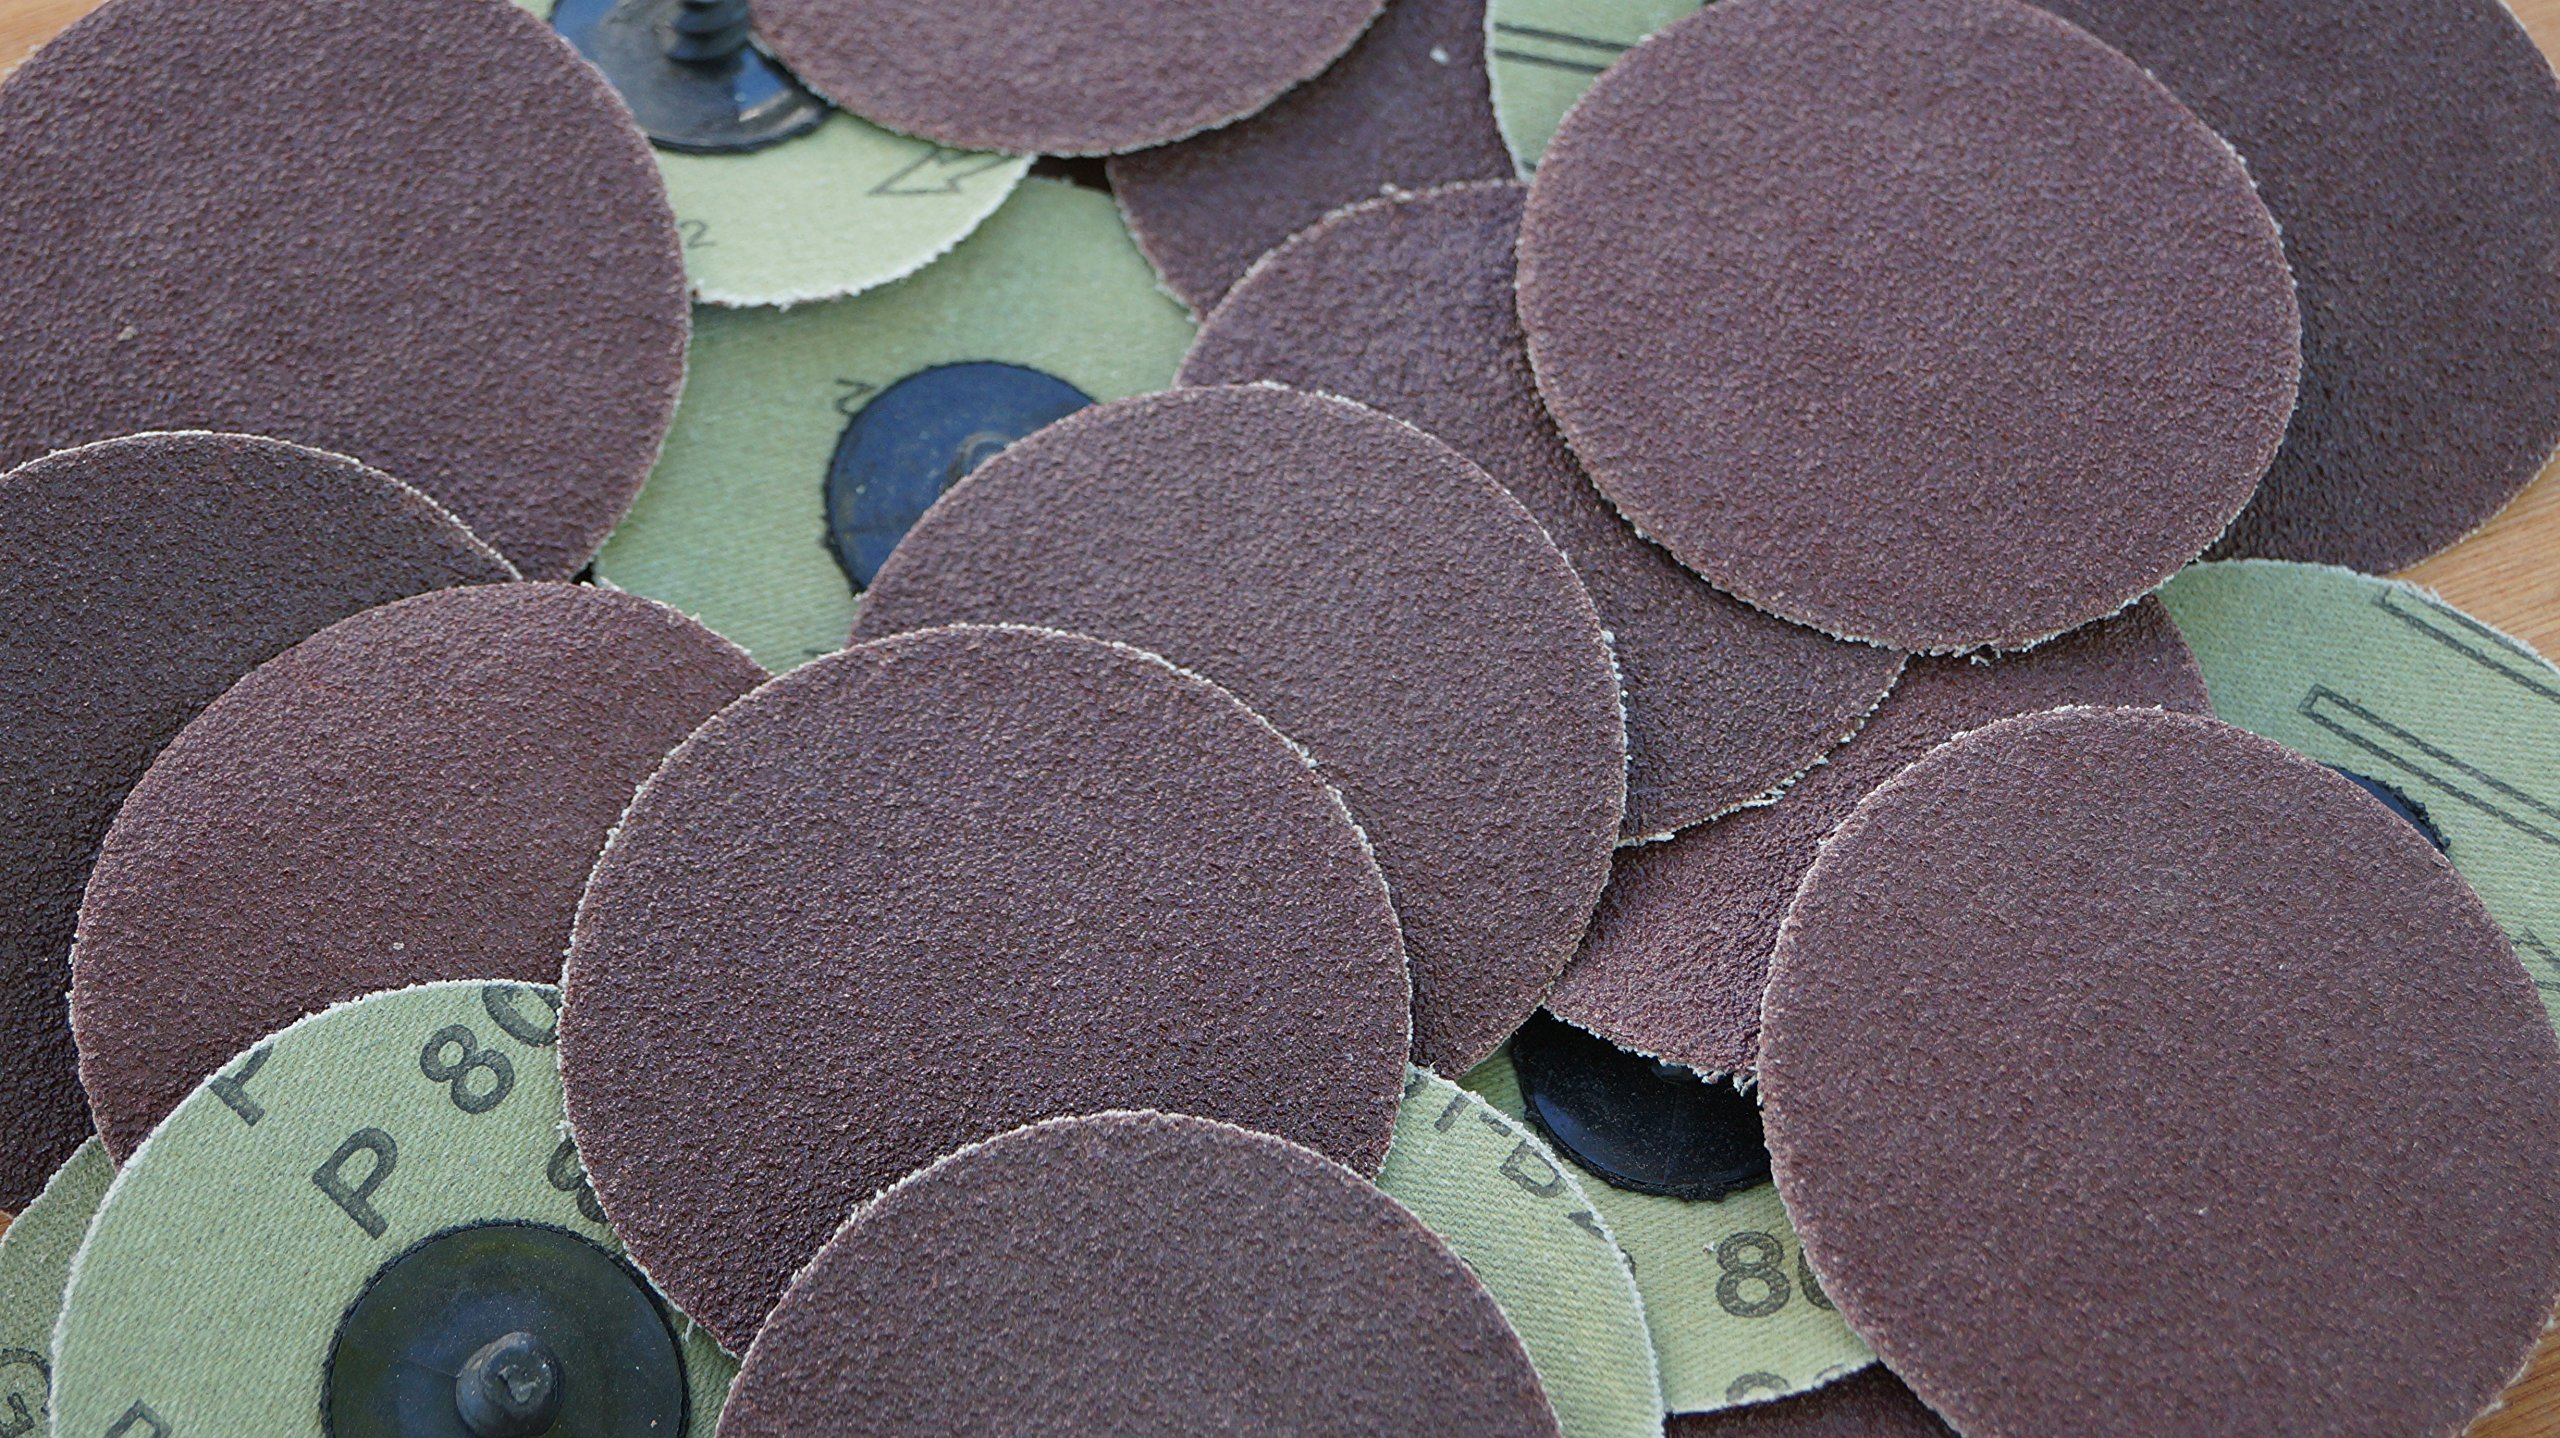 25pc 3'' Roloc Discs 80 Grit R Type Sanding Abrasive Roll Lock Medium Coarse Grain by IIT (Image #1)